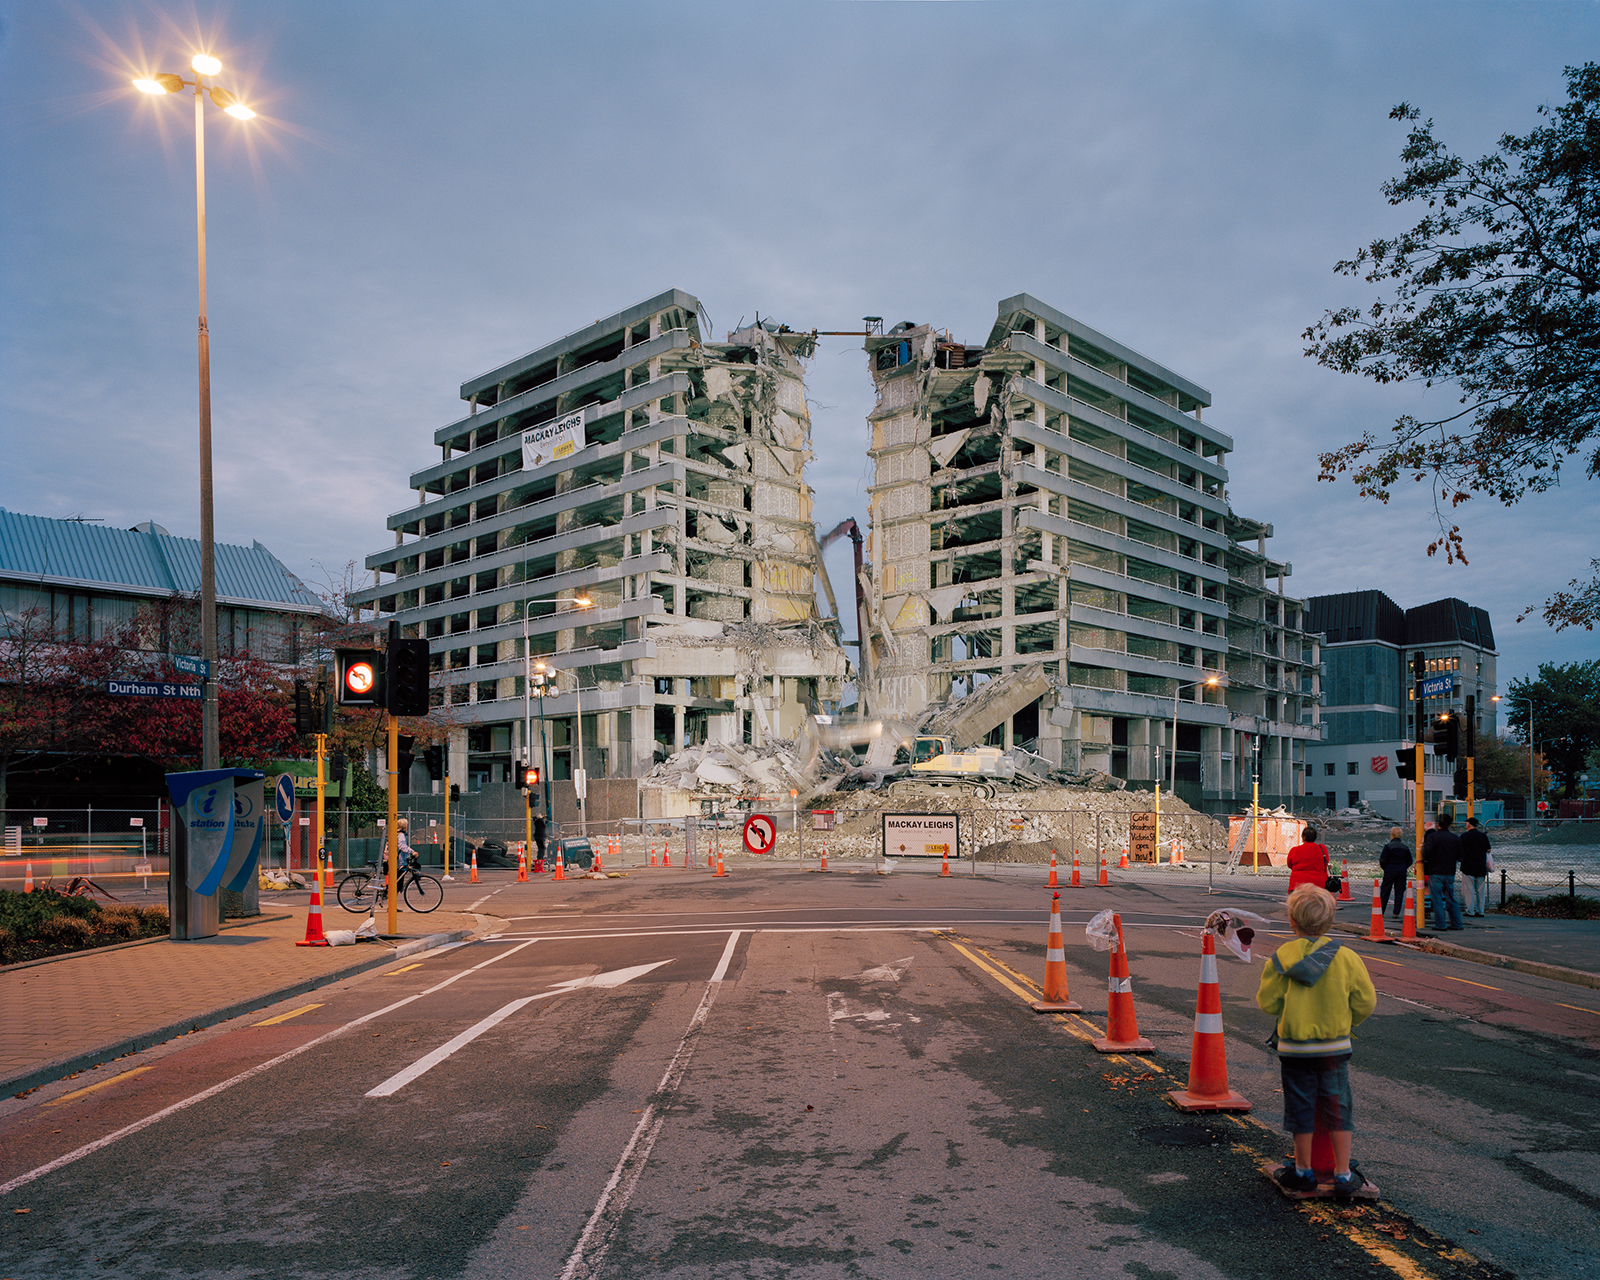 Tim J Veling,  Demolition of Crowne Plaza Hotel  from  Adaptation.